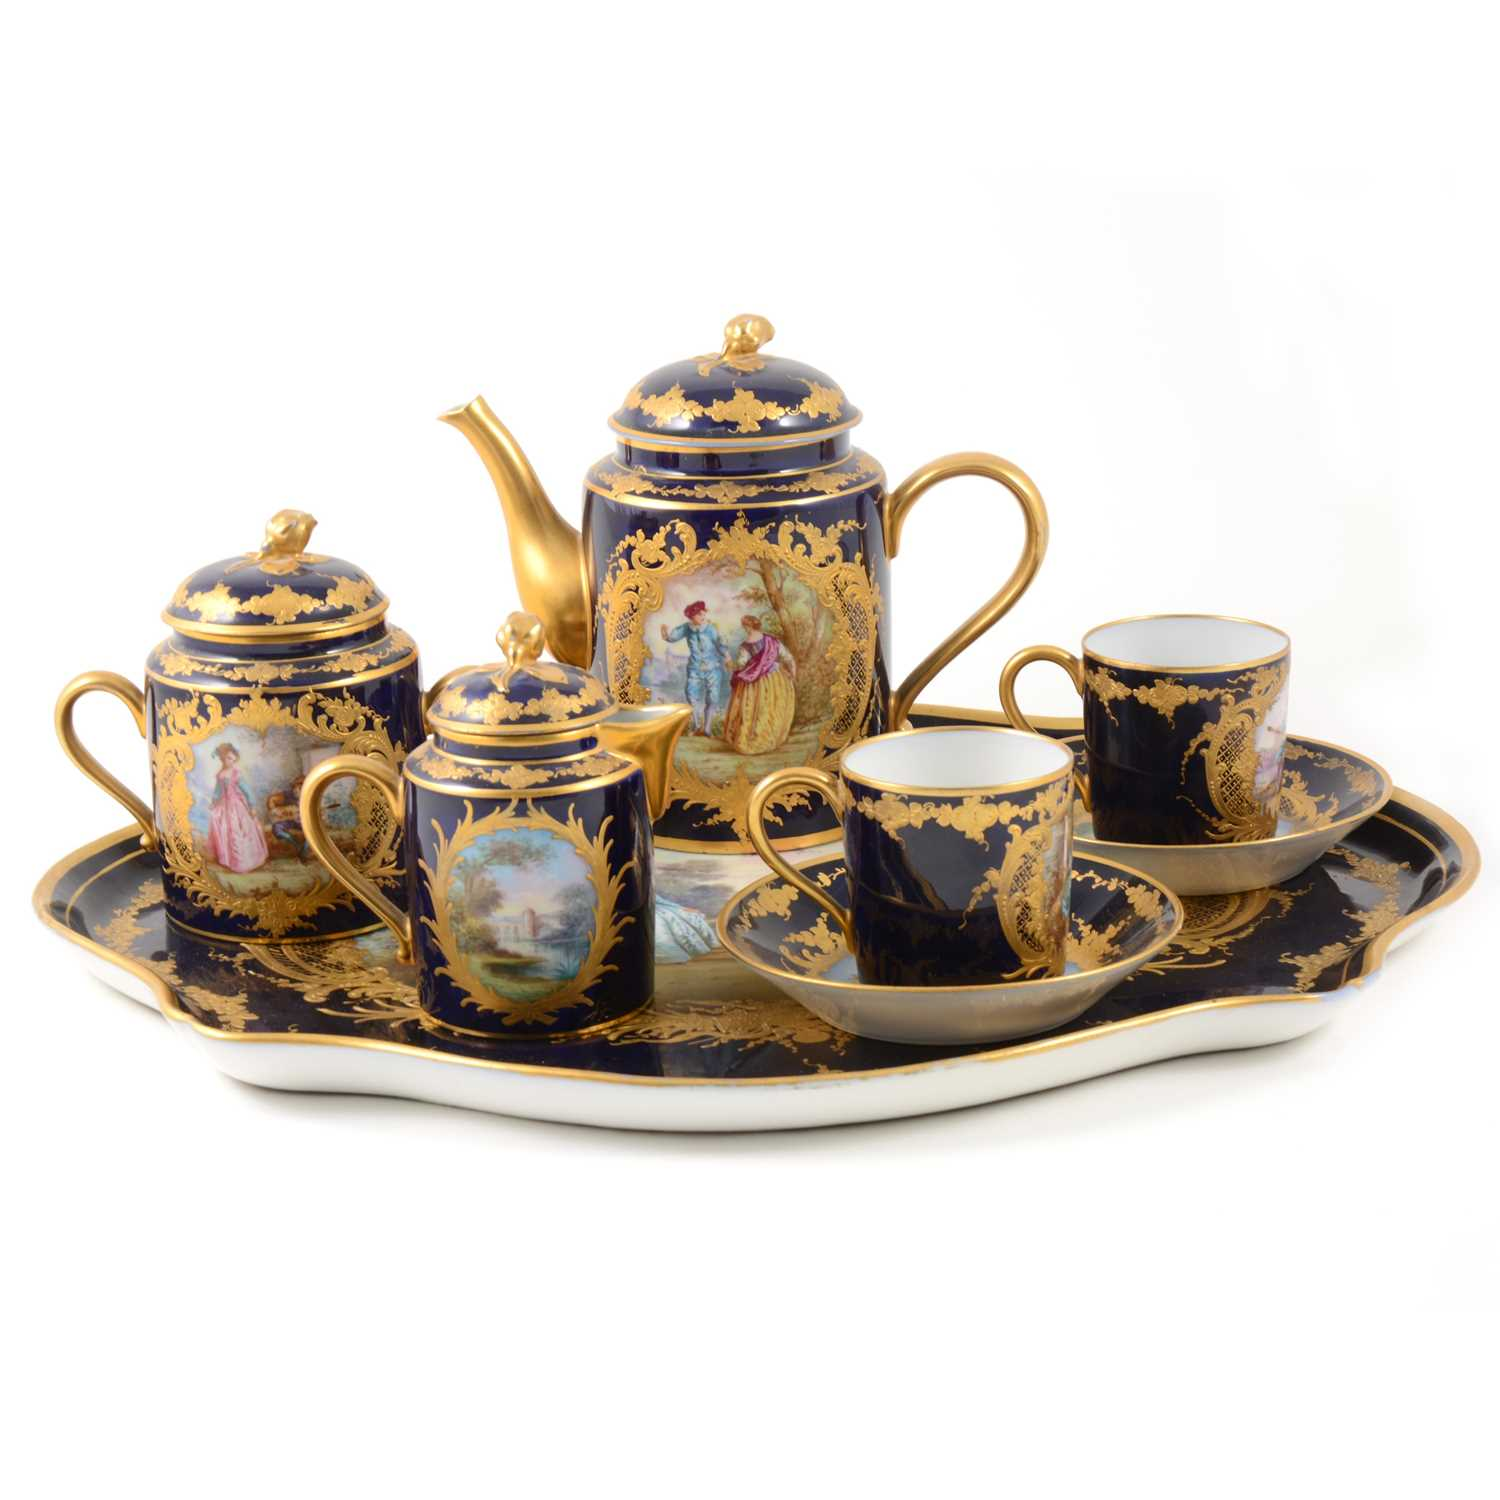 370 - A Sevres style cabaret set, probably Limoges, late 19th century